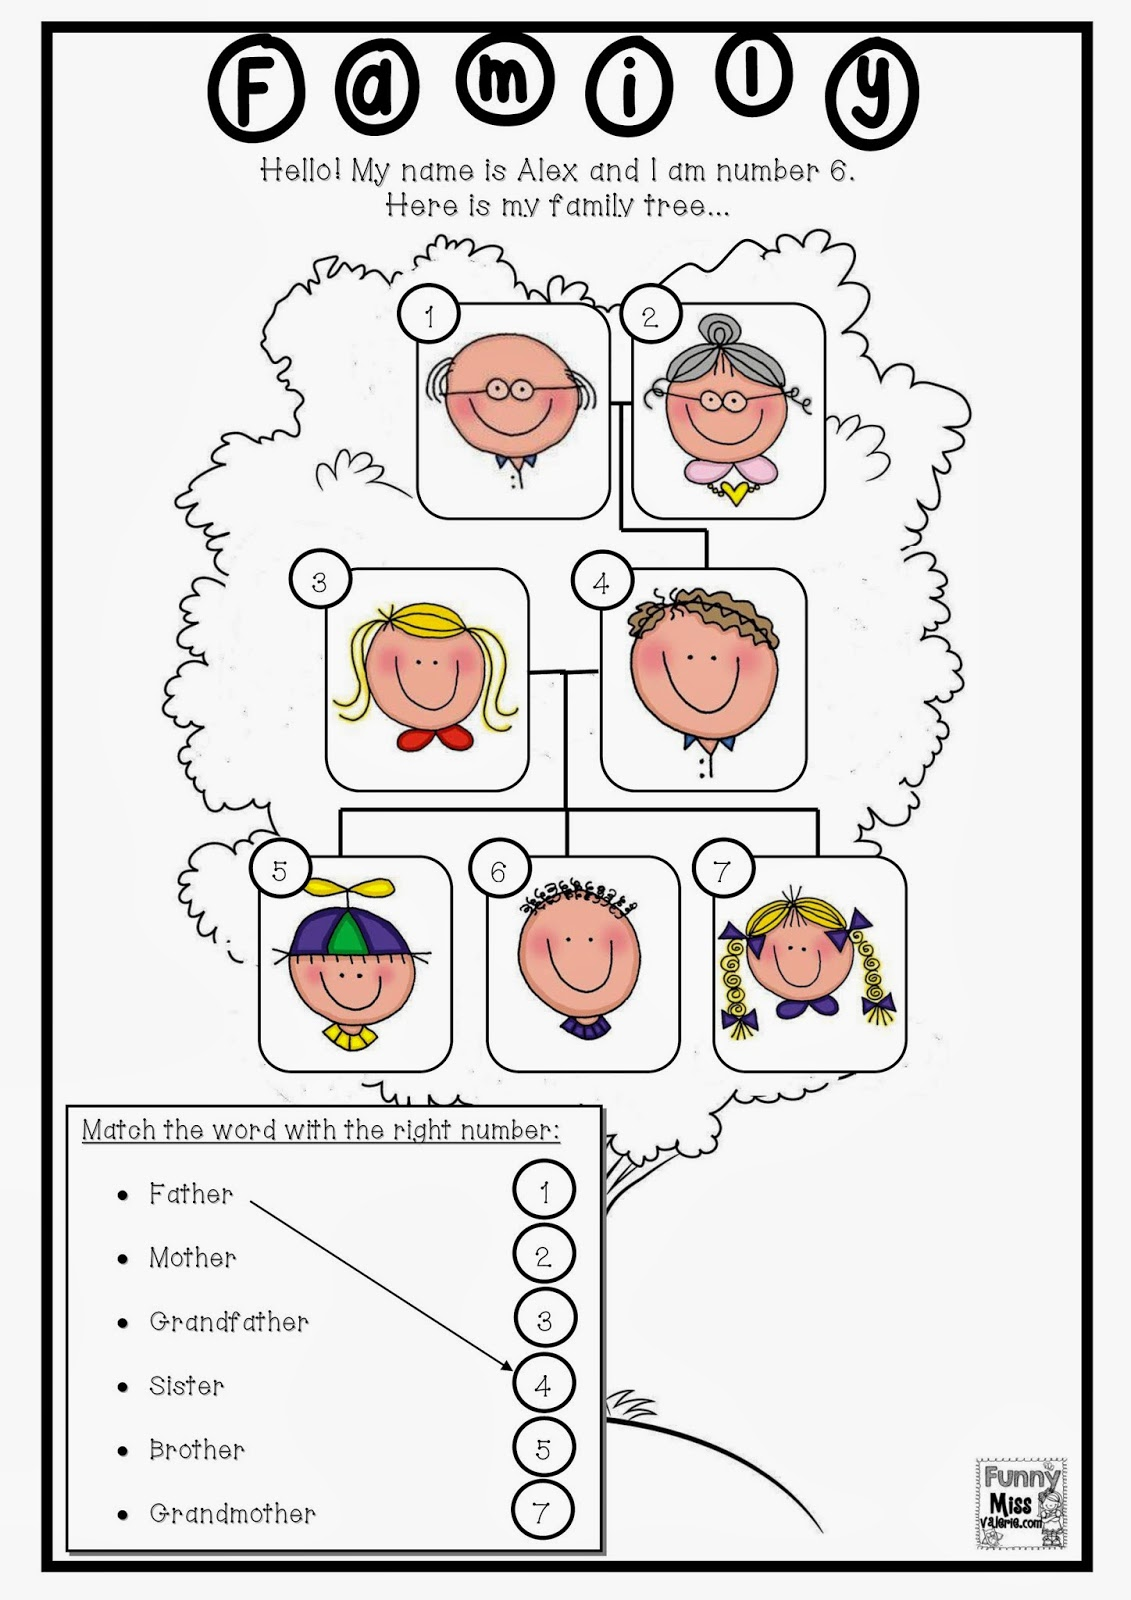 Worksheet On My Family For Grade 2